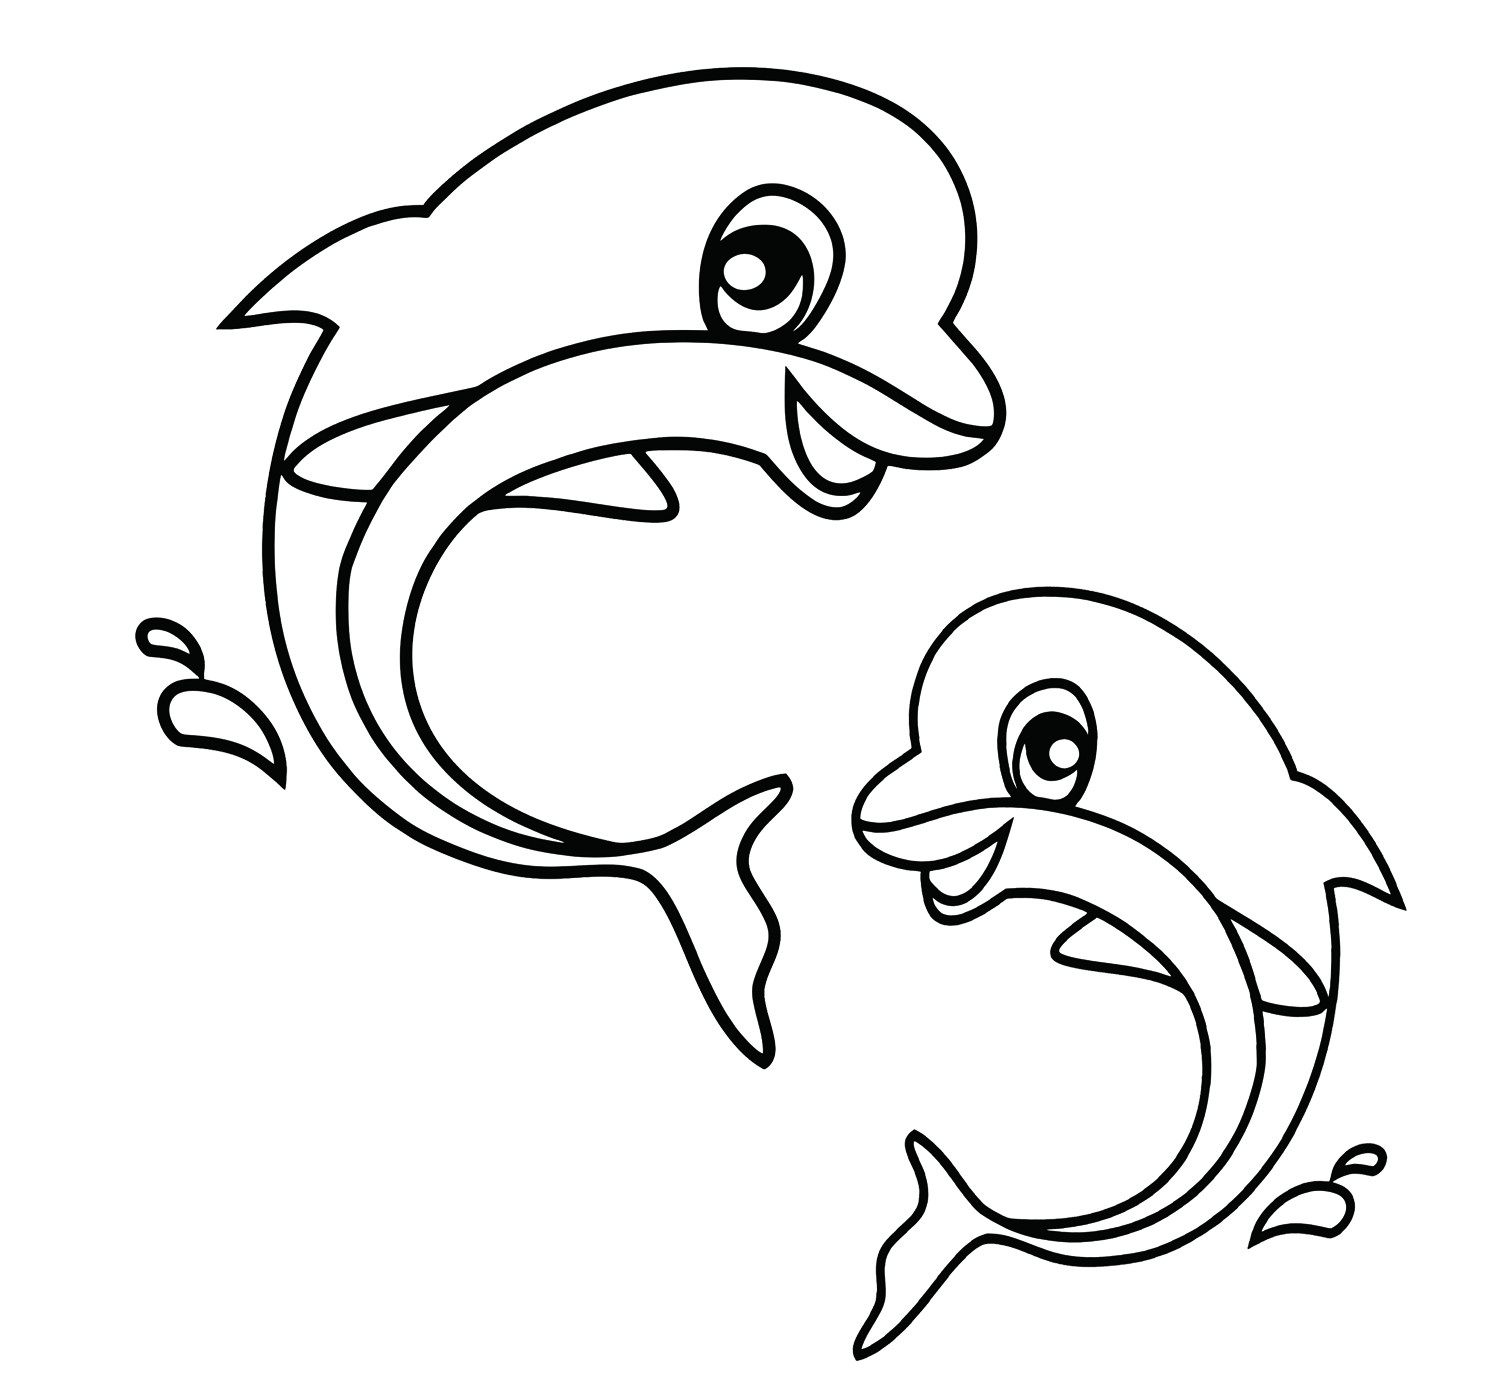 Best ideas about Free Coloring Pages Animals To Print . Save or Pin Coloring Pages Sea Serpent Seas And Oceans Free Printable Now.